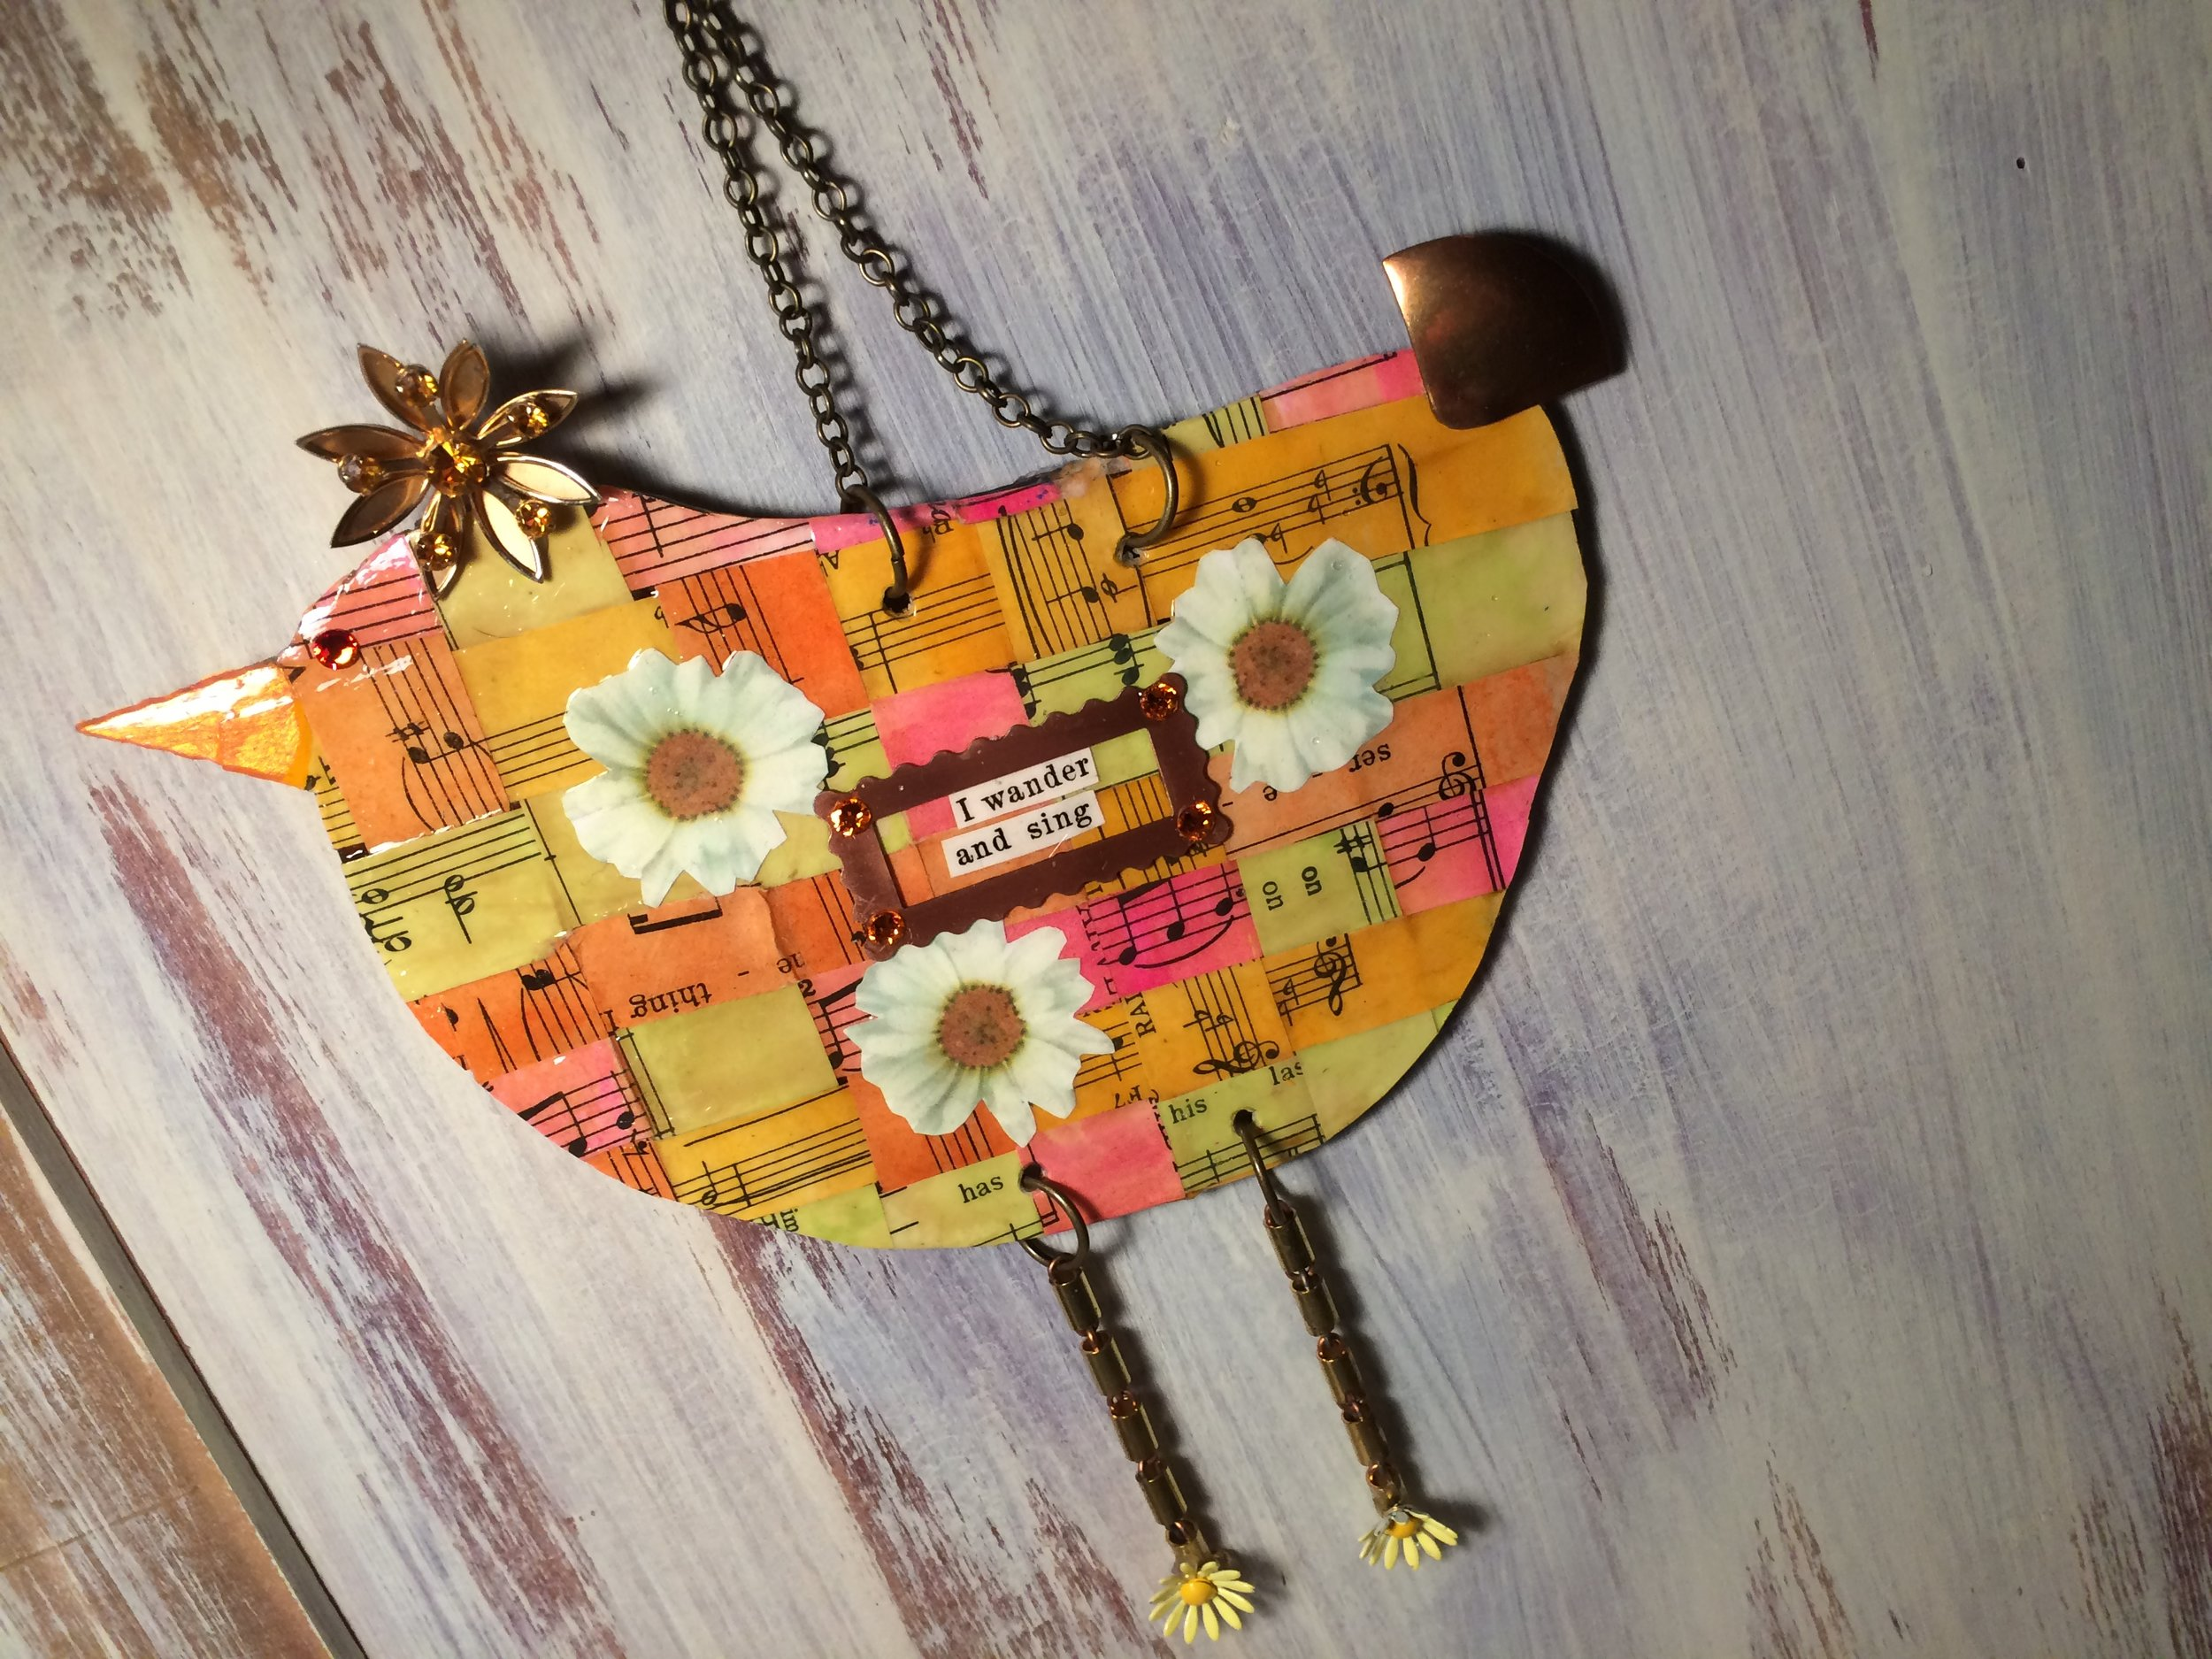 """Metal Bird Workshop  Saturday, June 3, 1-4 pm  The size of the birds are about 7"""" wide, and 4"""" long, before legs and other embellishments are added.  Diana will demonstrate techniques to embellish and personalize this unique art.  Materials included  Minimum of 6 in the class.  $75. per person"""